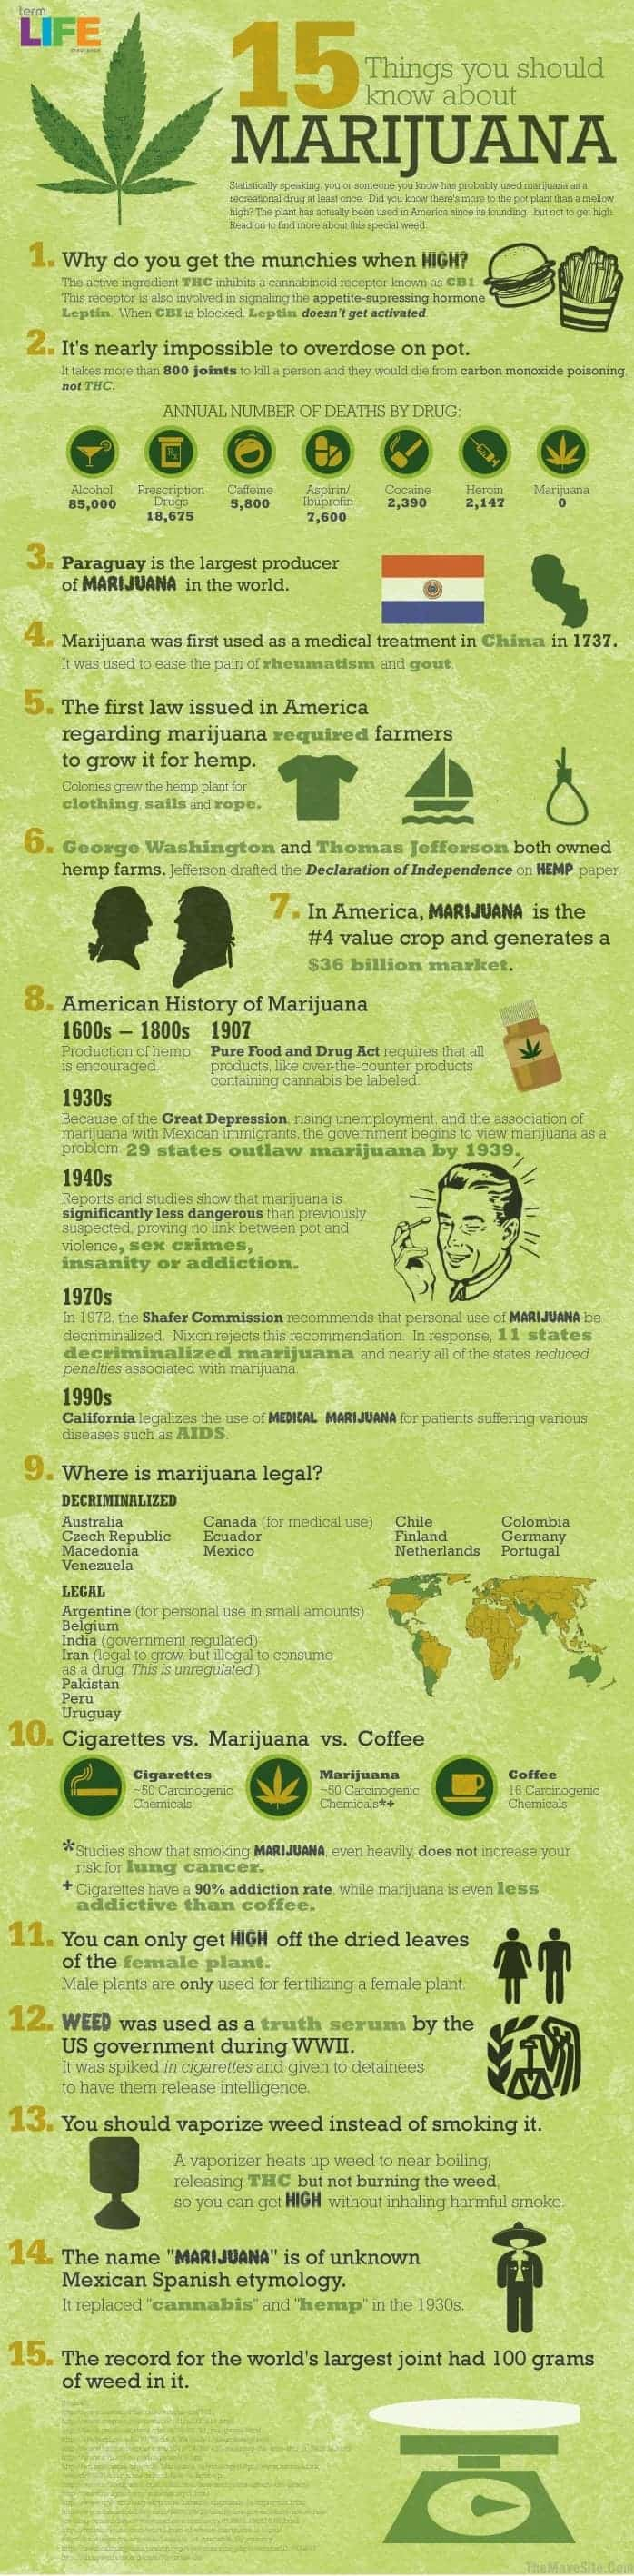 15 Things to Know About Marijuana